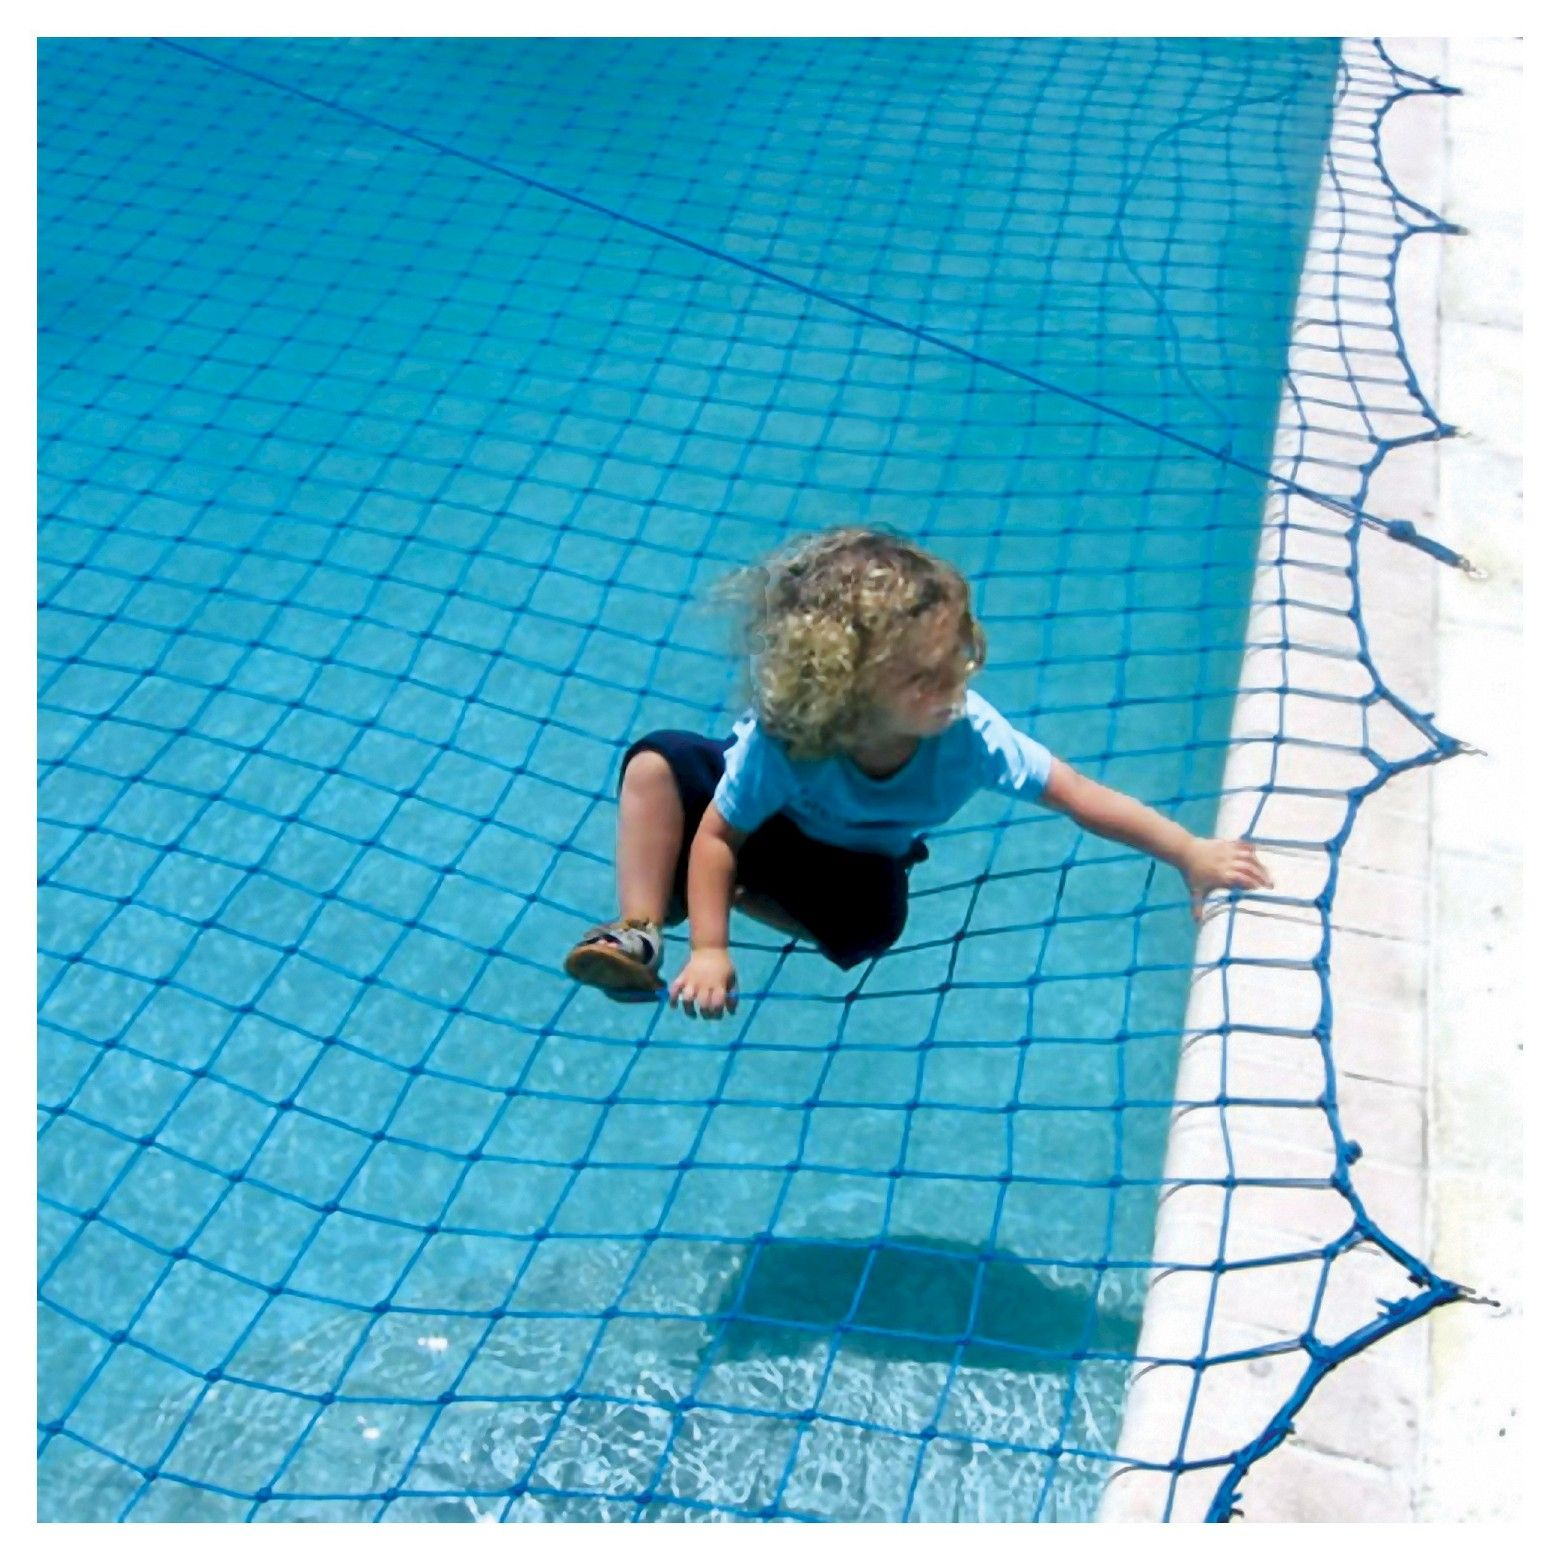 Prevent Accidents With The Water Warden Pool Safety Net For In Ground Pool This Inground Pool Safety Net Stretches Pool Safety Net Pool Safety In Ground Pools